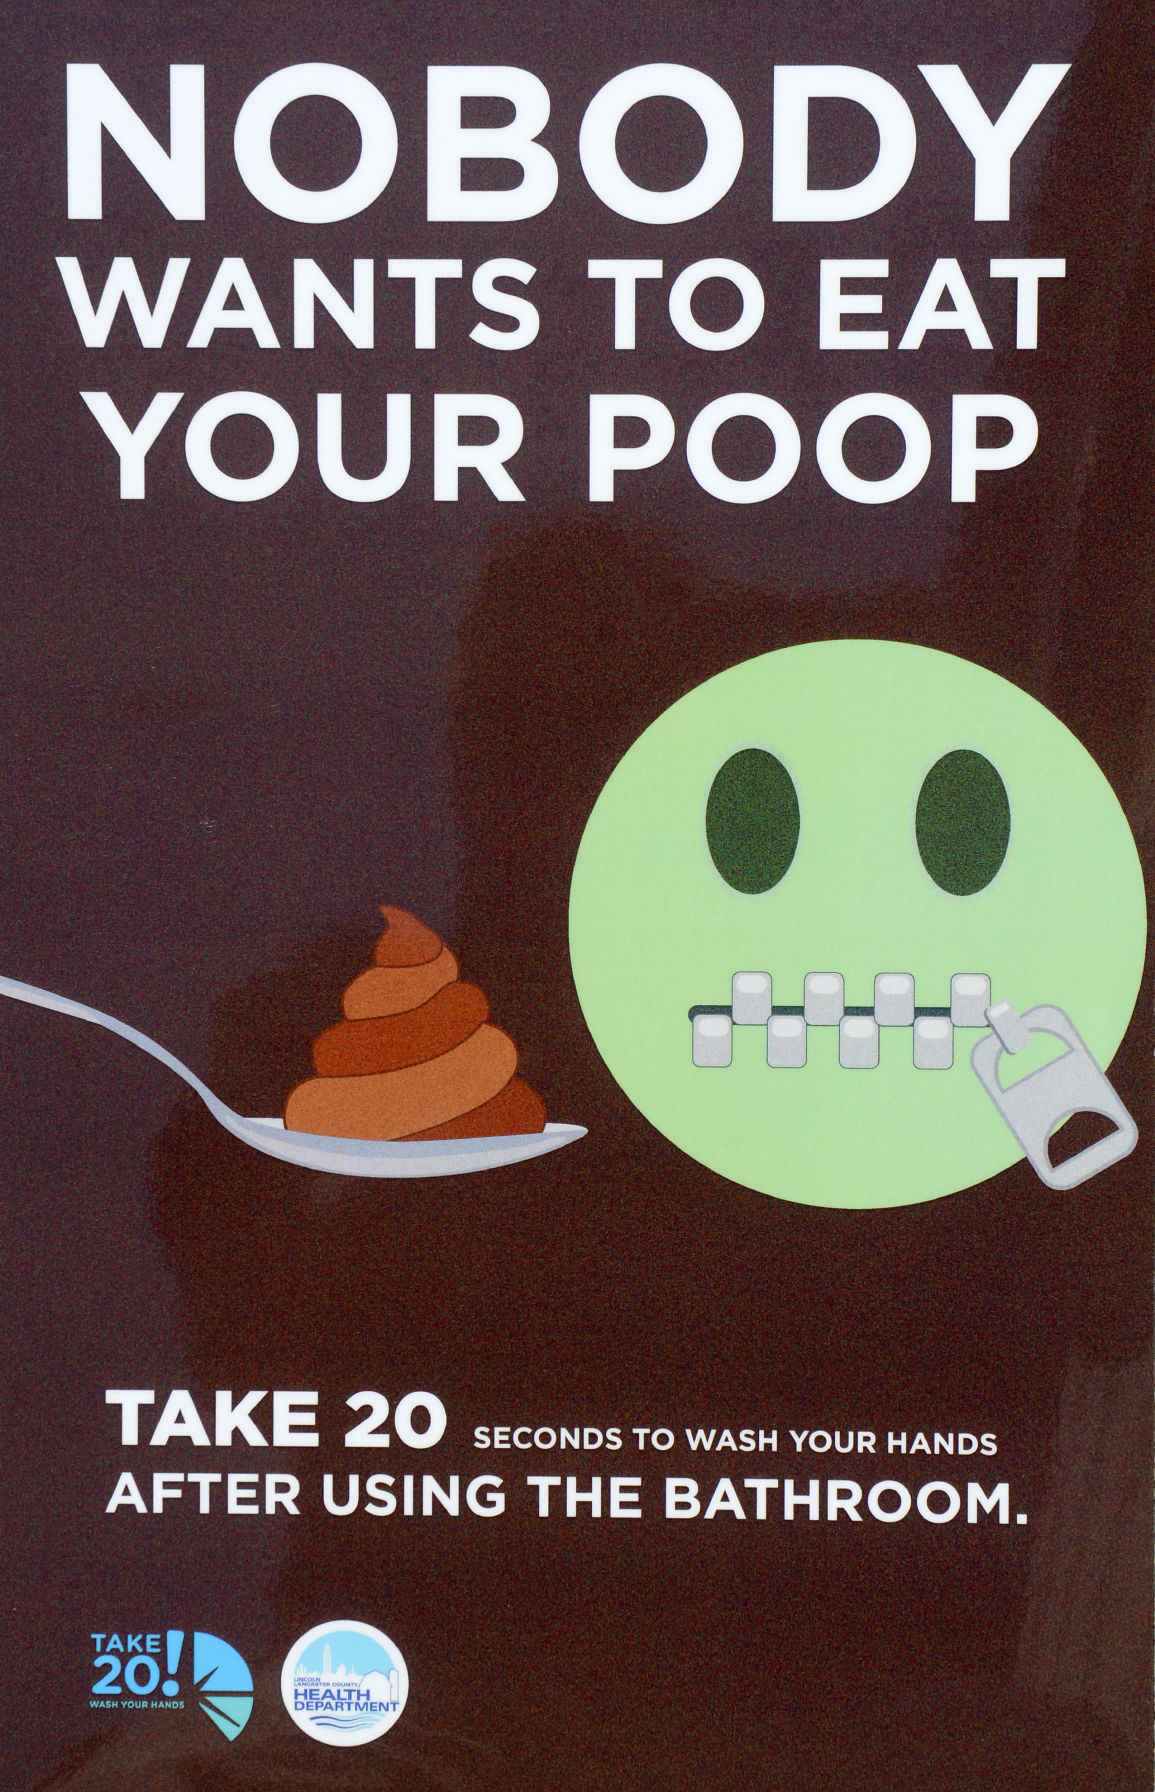 Health Advocates Hope Talking About Poop Might Get